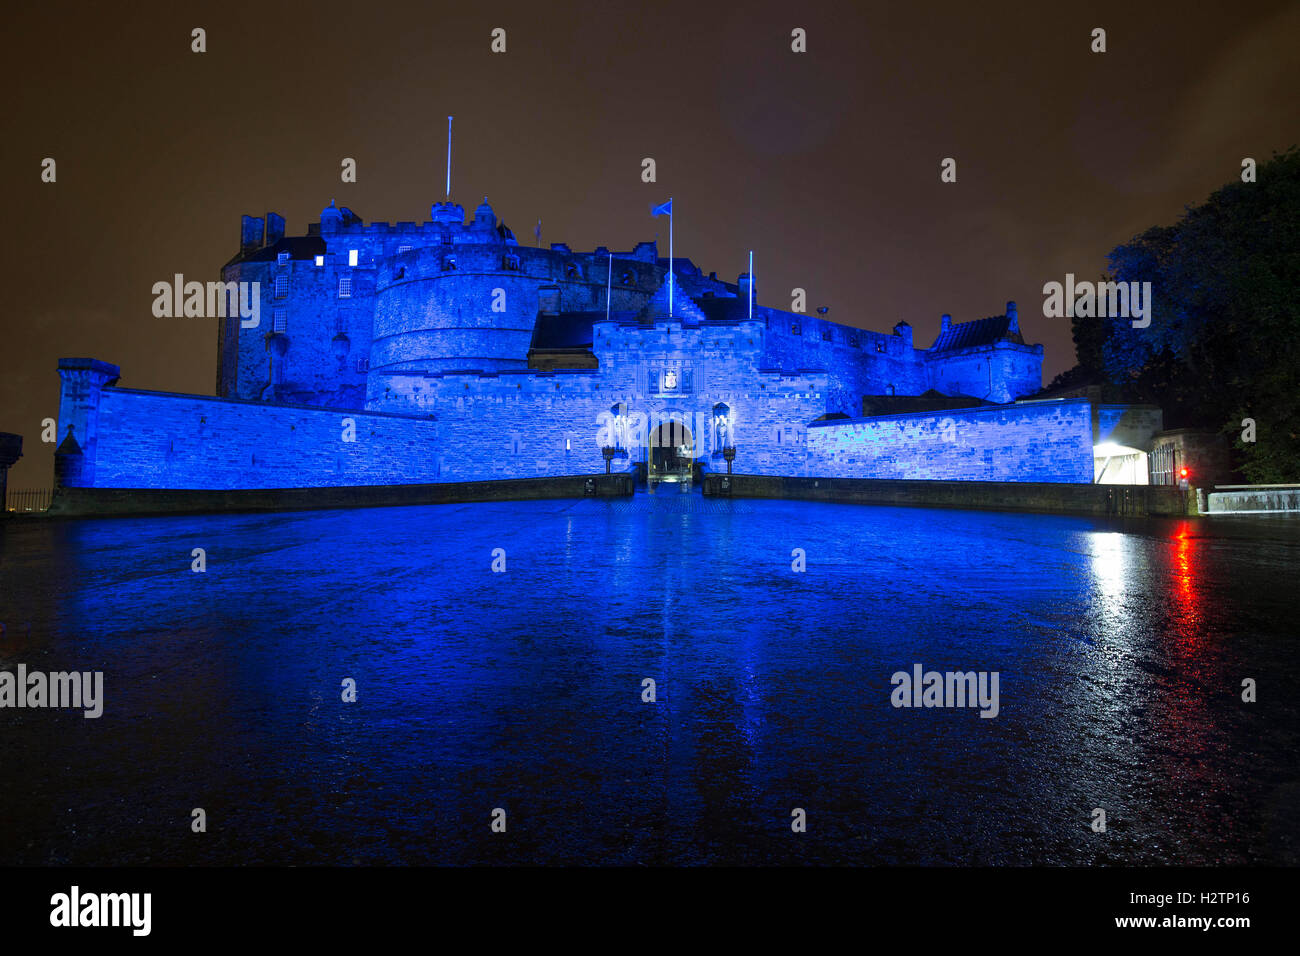 Edinburgh Castle at night bathed in Saltire Blue light - Stock Image